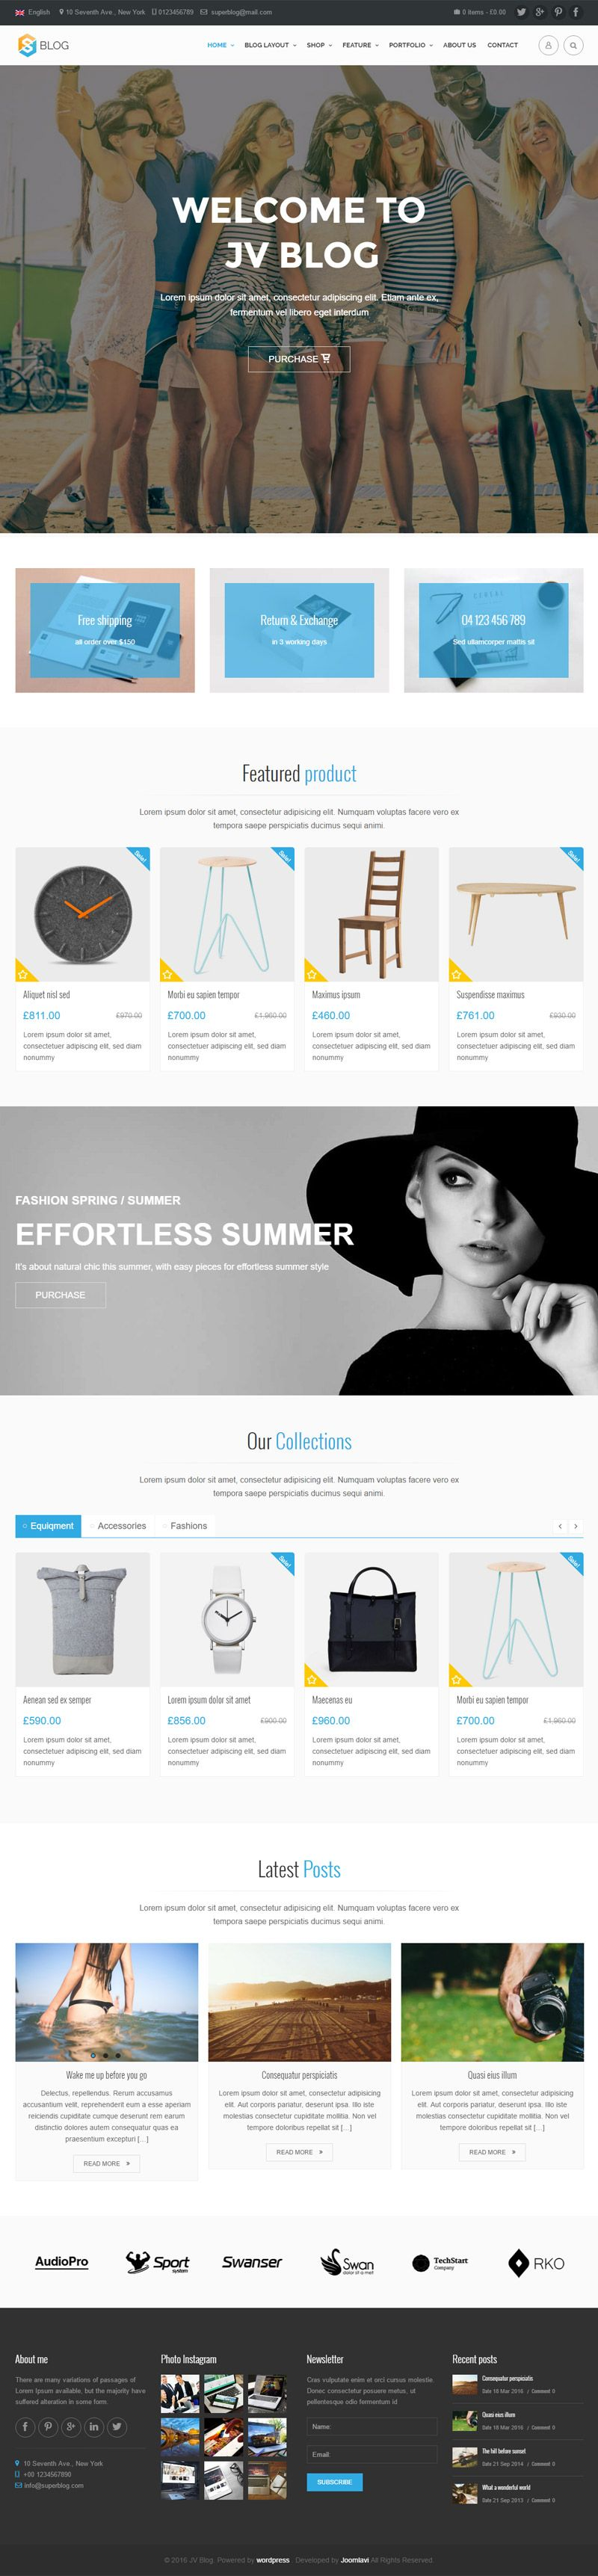 Jv Blog - Responsive WordPress Theme Screenshot 6